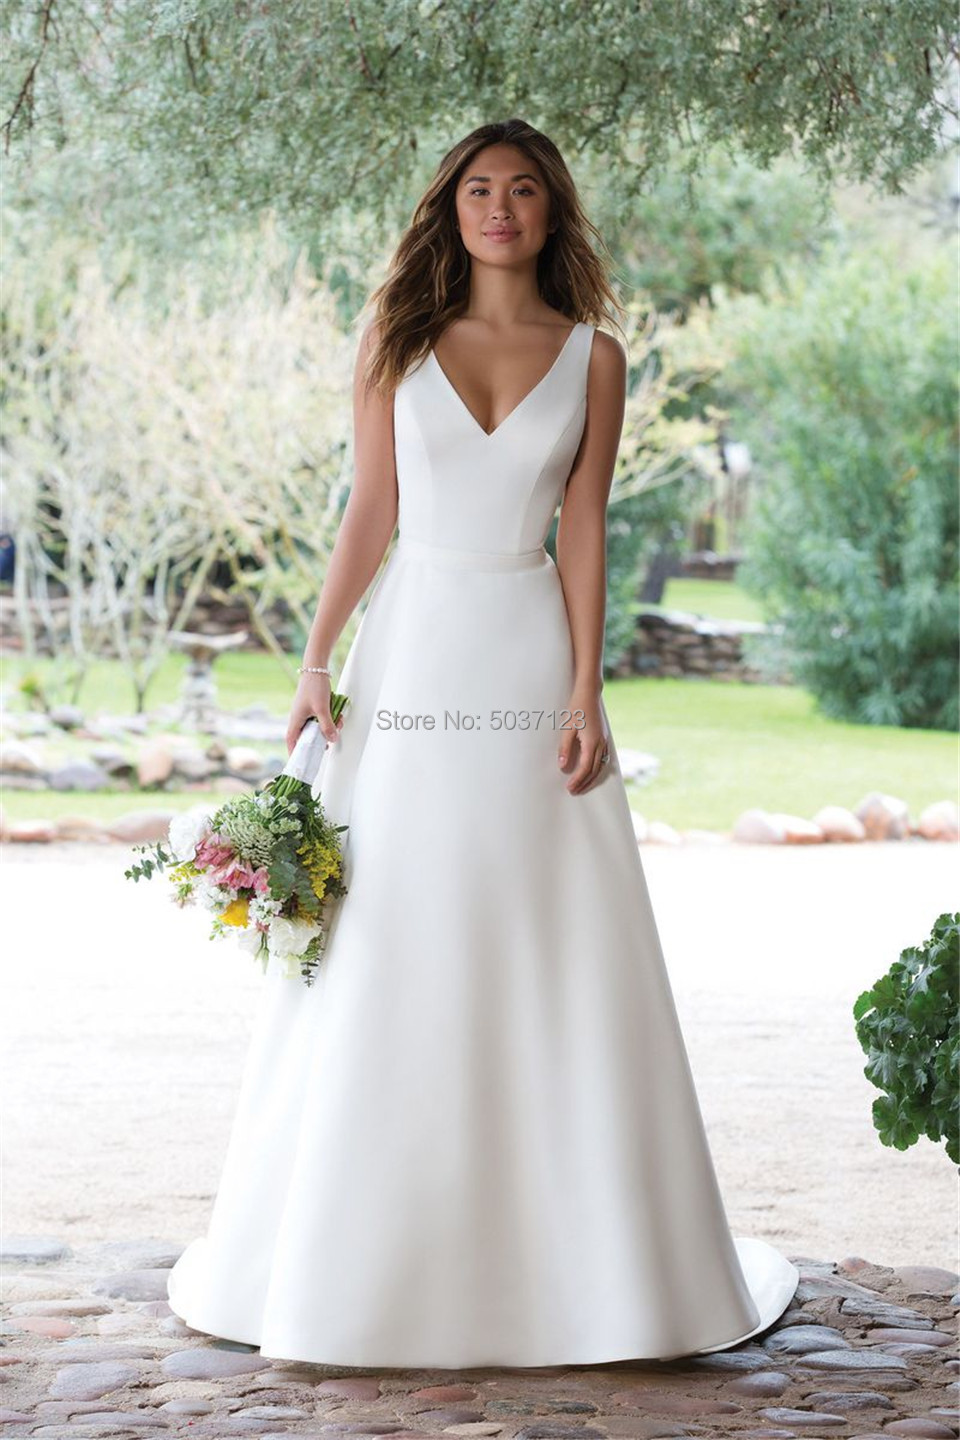 V Neck White Ivory Illusion Button Wedding Bridal Gown